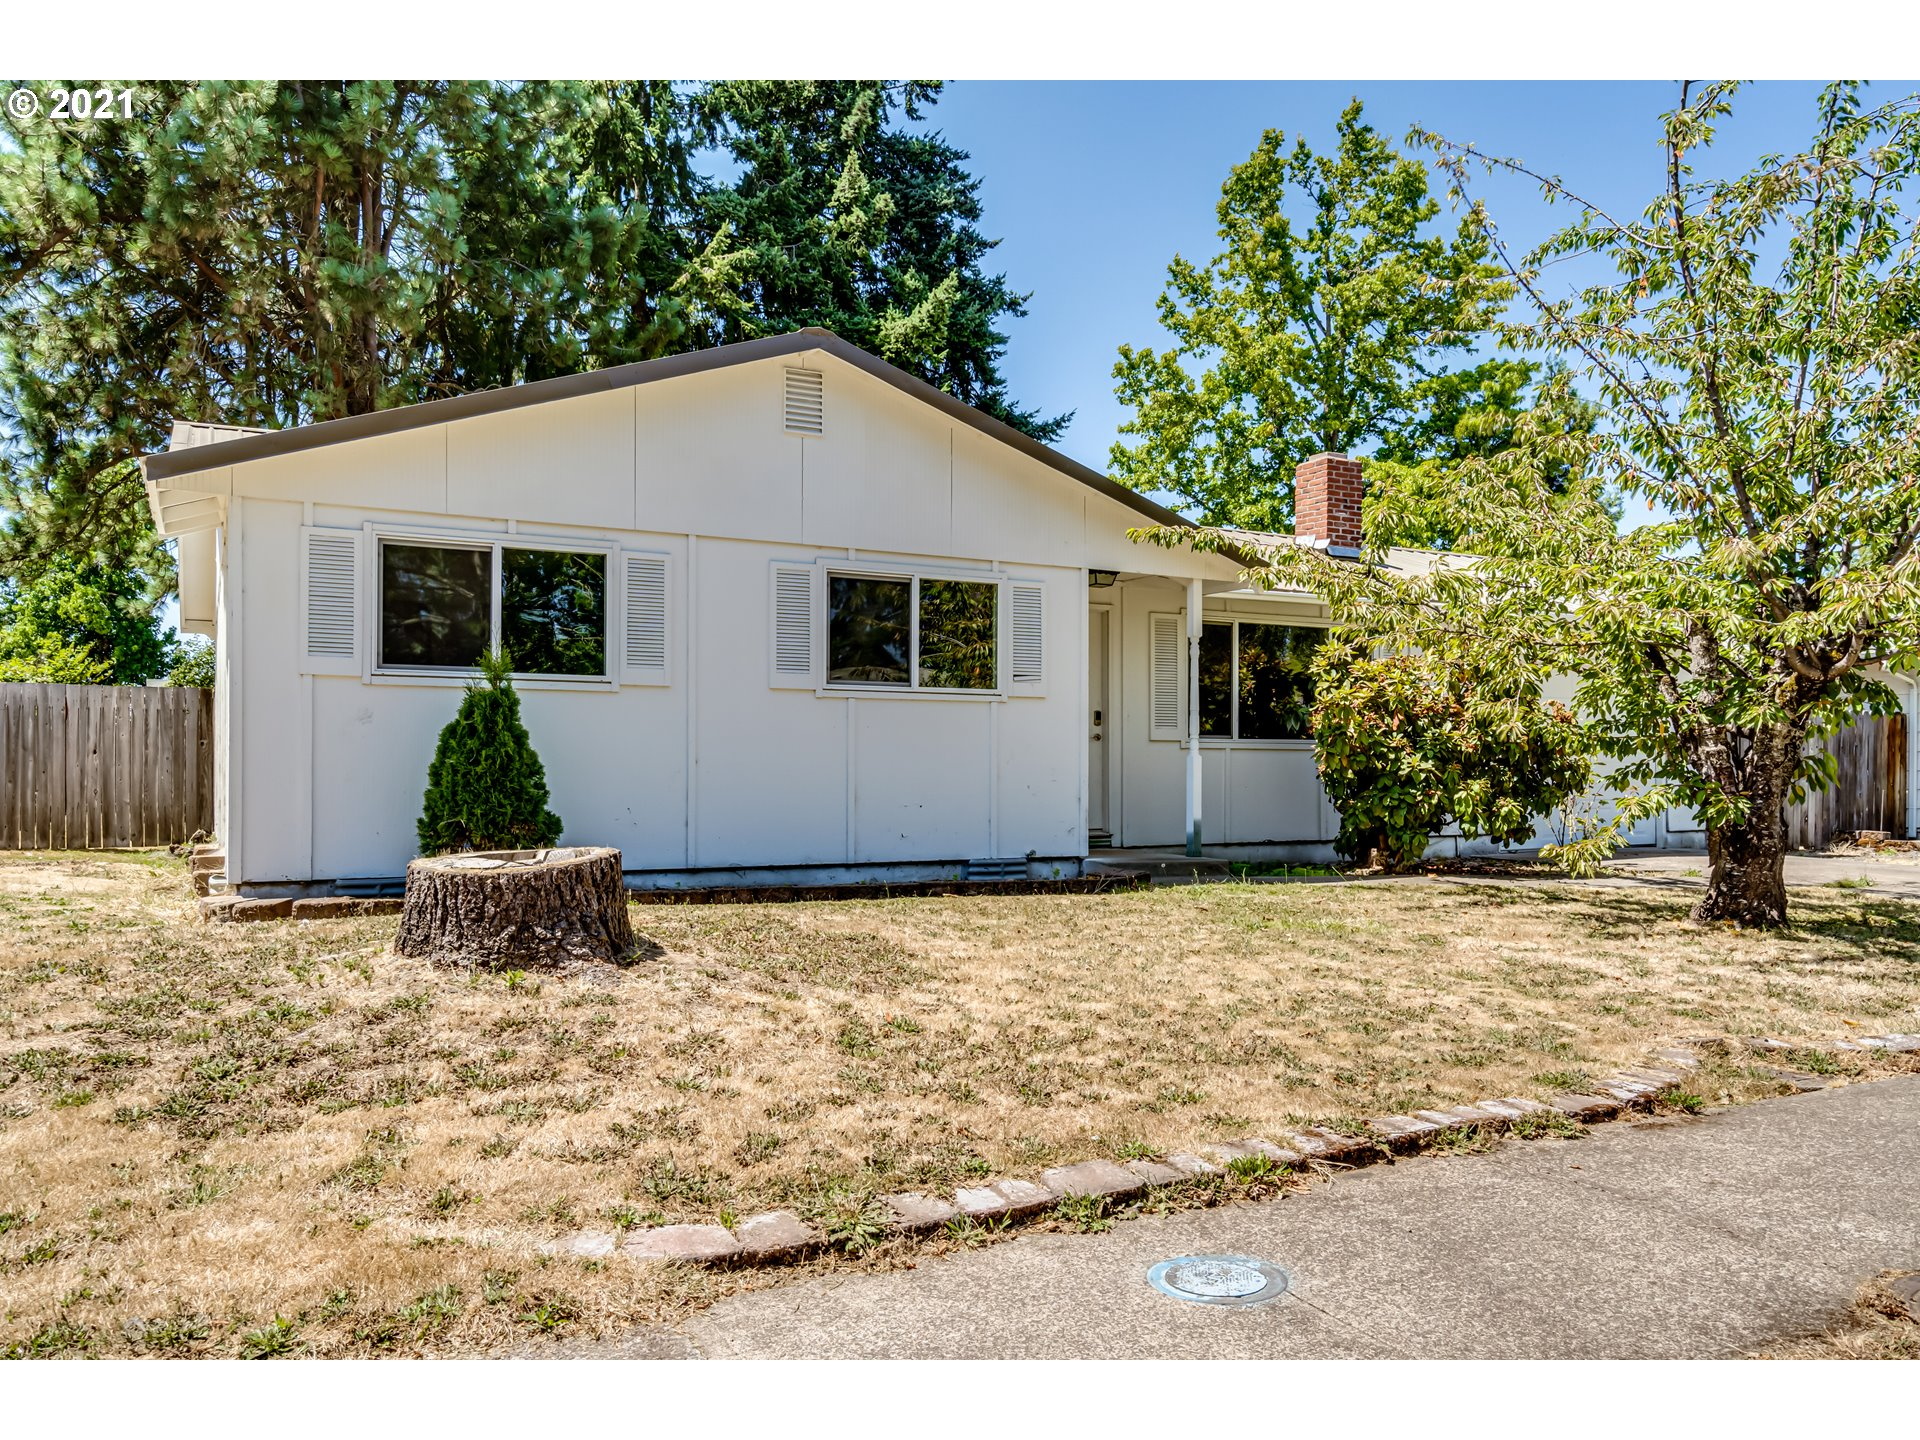 384 S 44TH ST, Springfield OR 97478